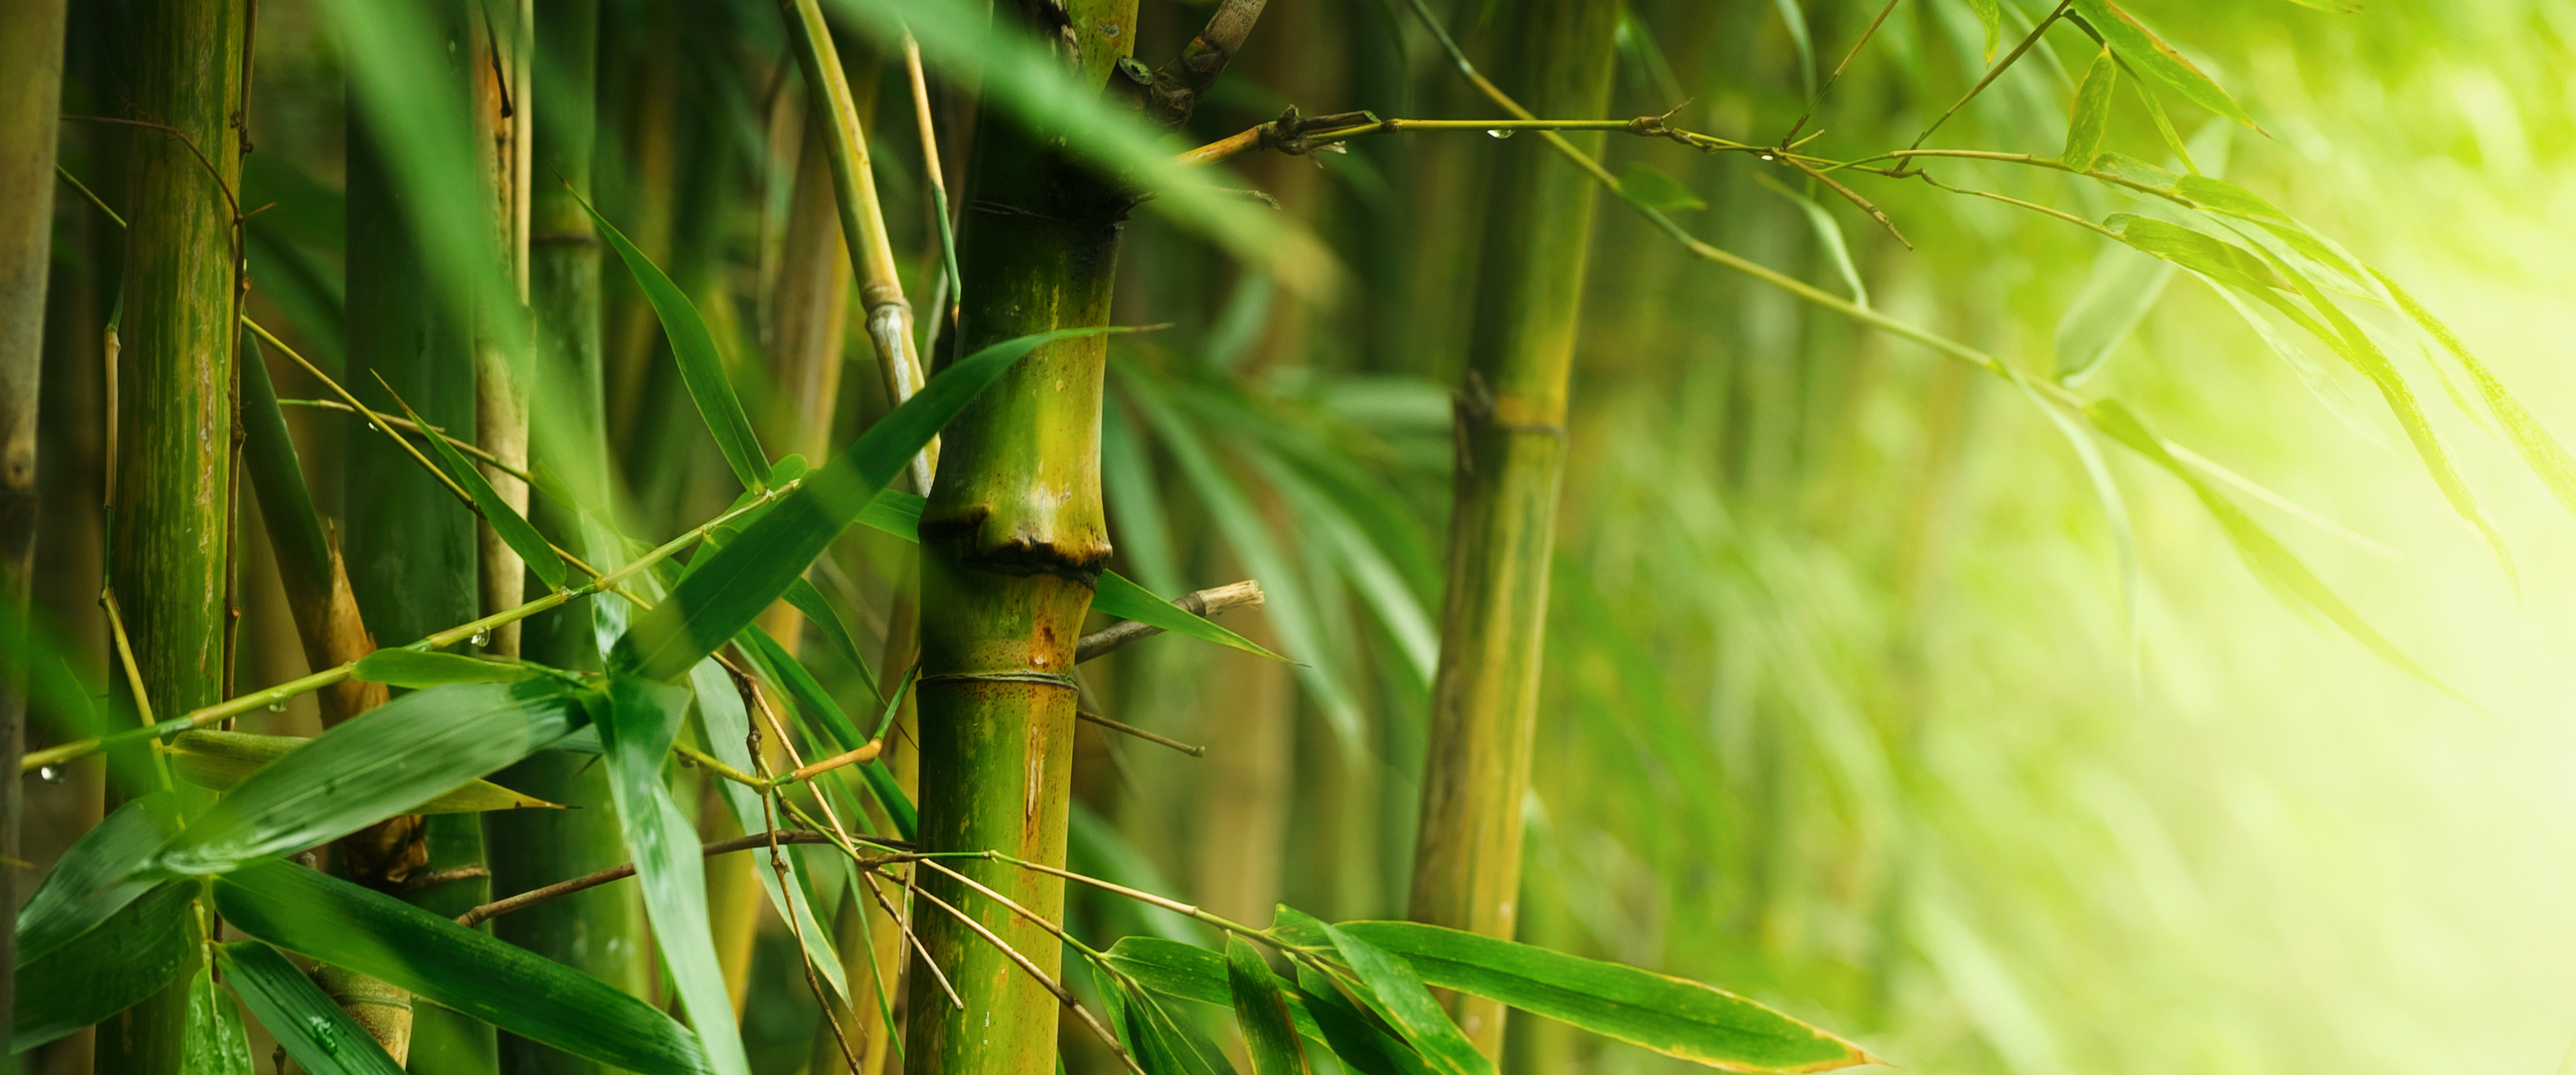 How to Grow Bamboo (Without It Taking Over Your Garden)